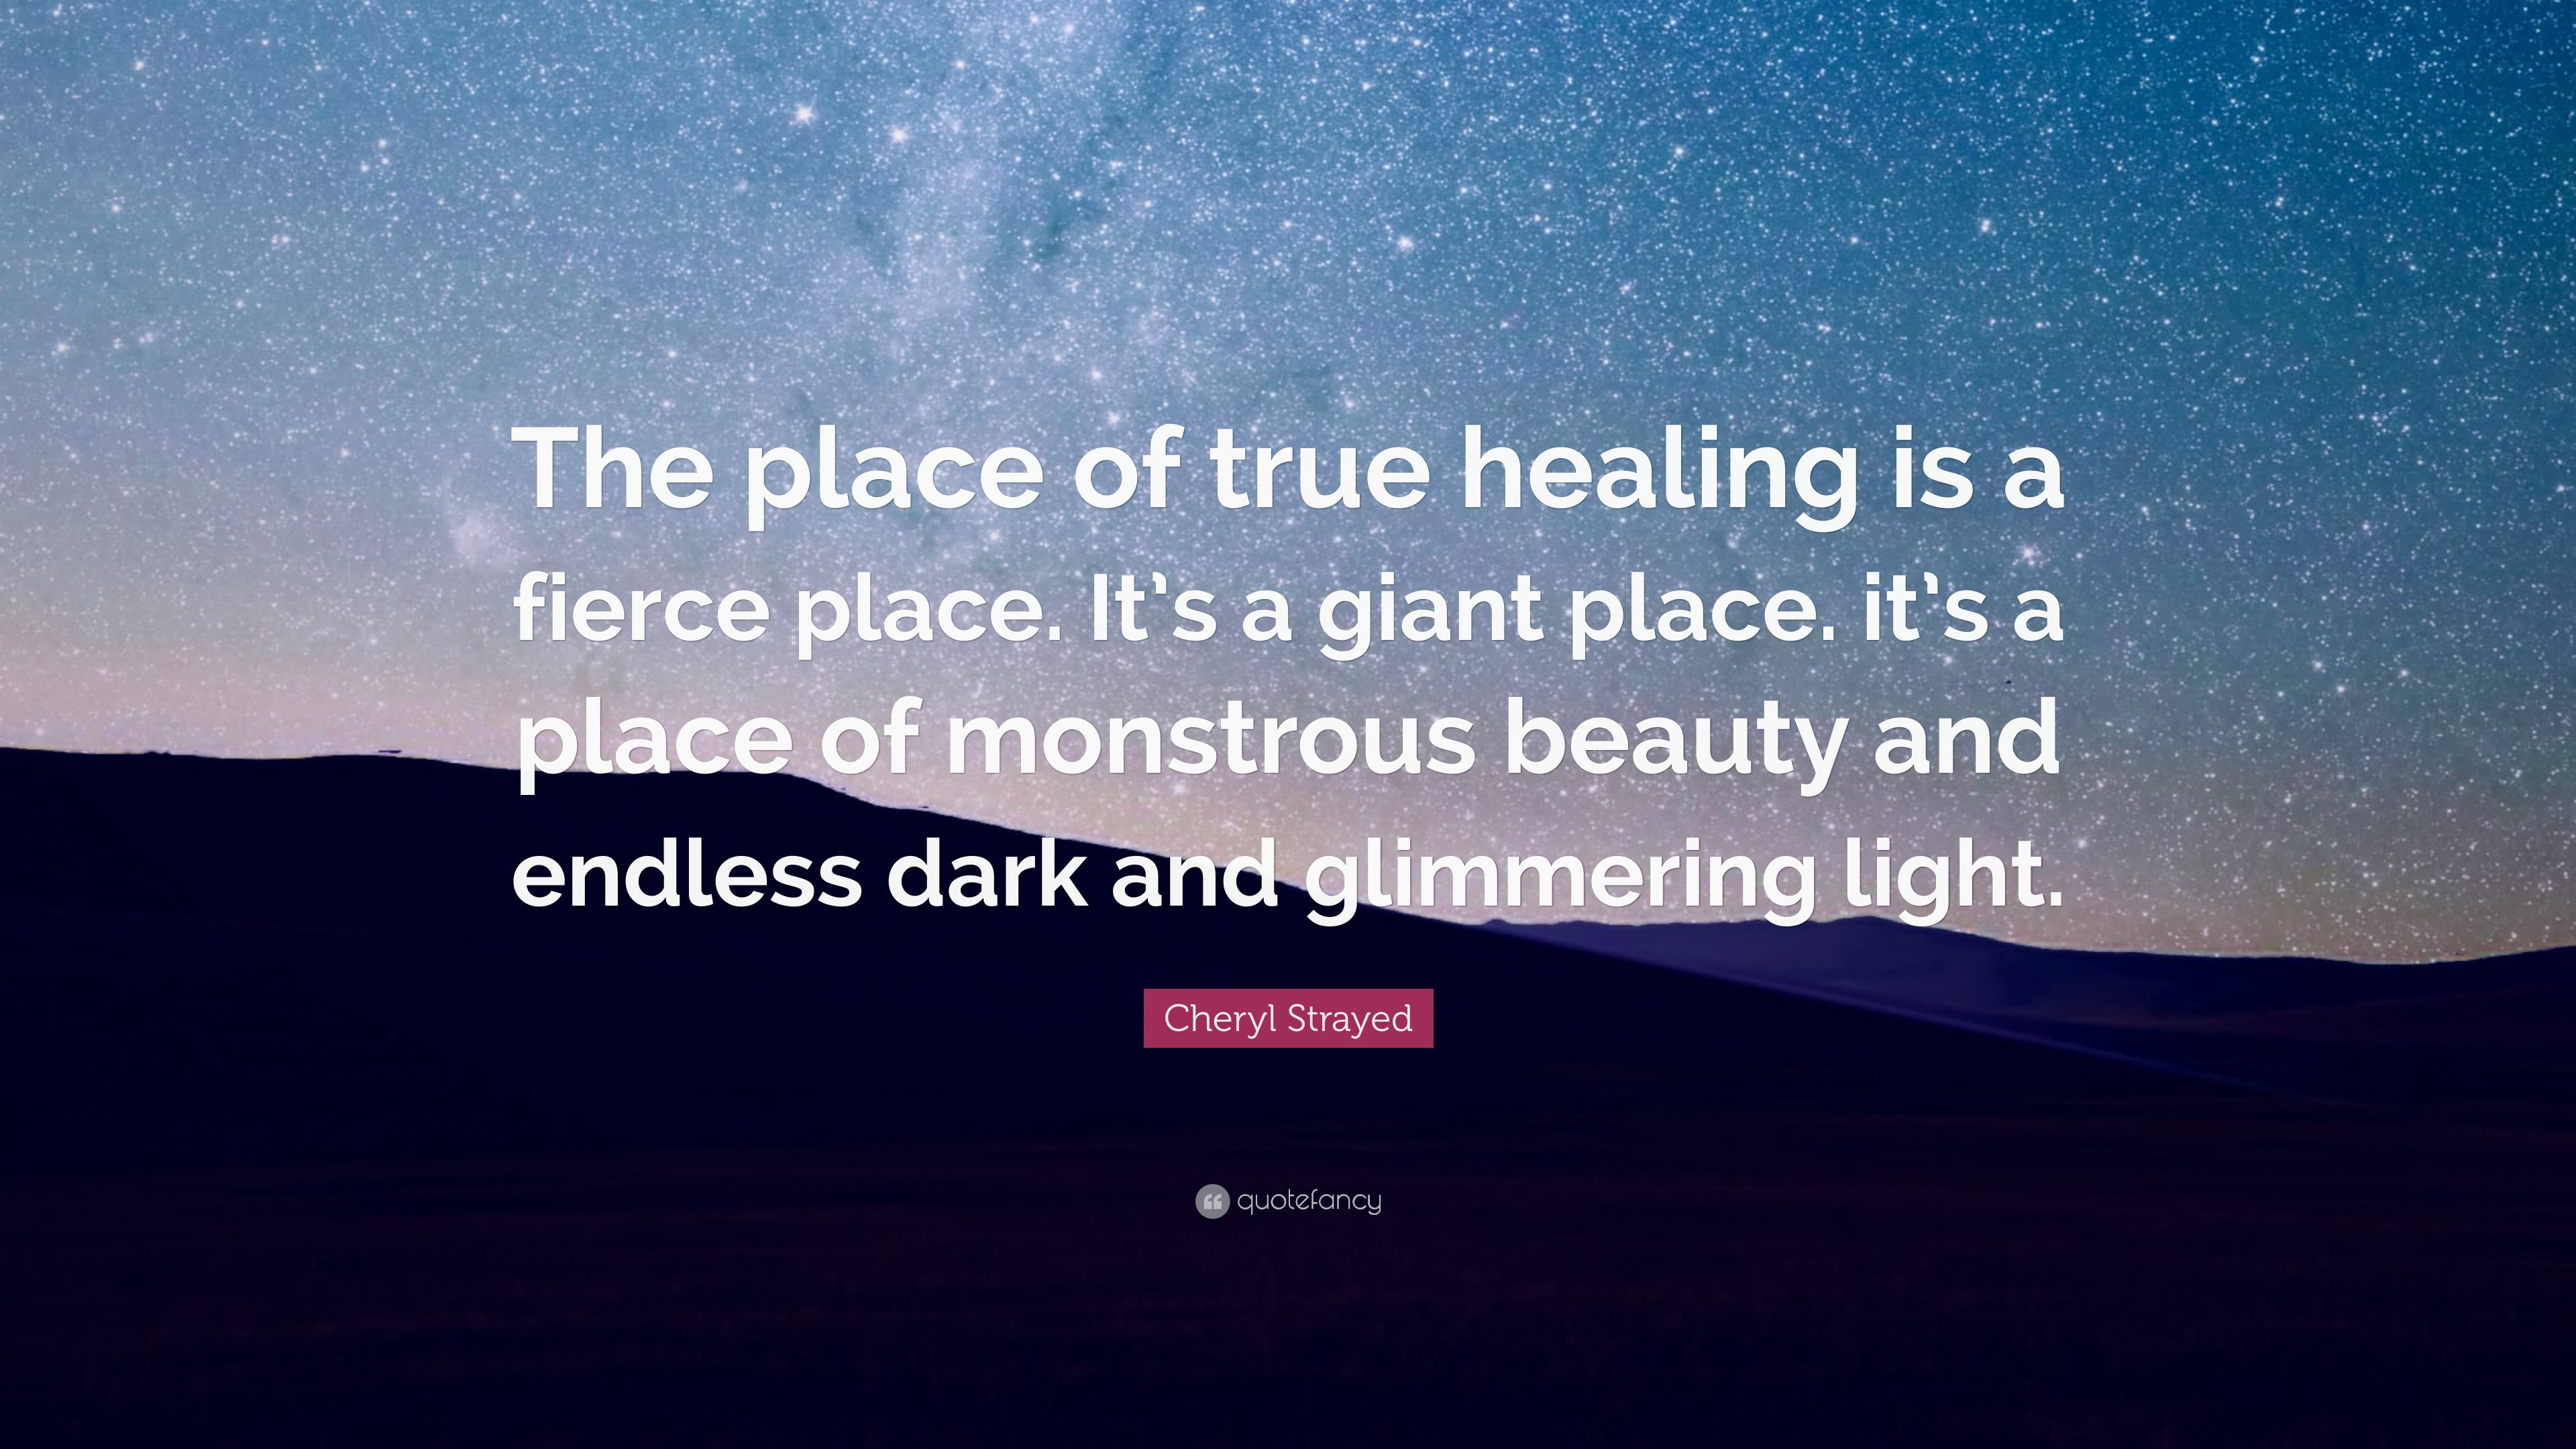 Healing Quotes Interesting Healing Quotes 40 Wallpapers  Quotefancy